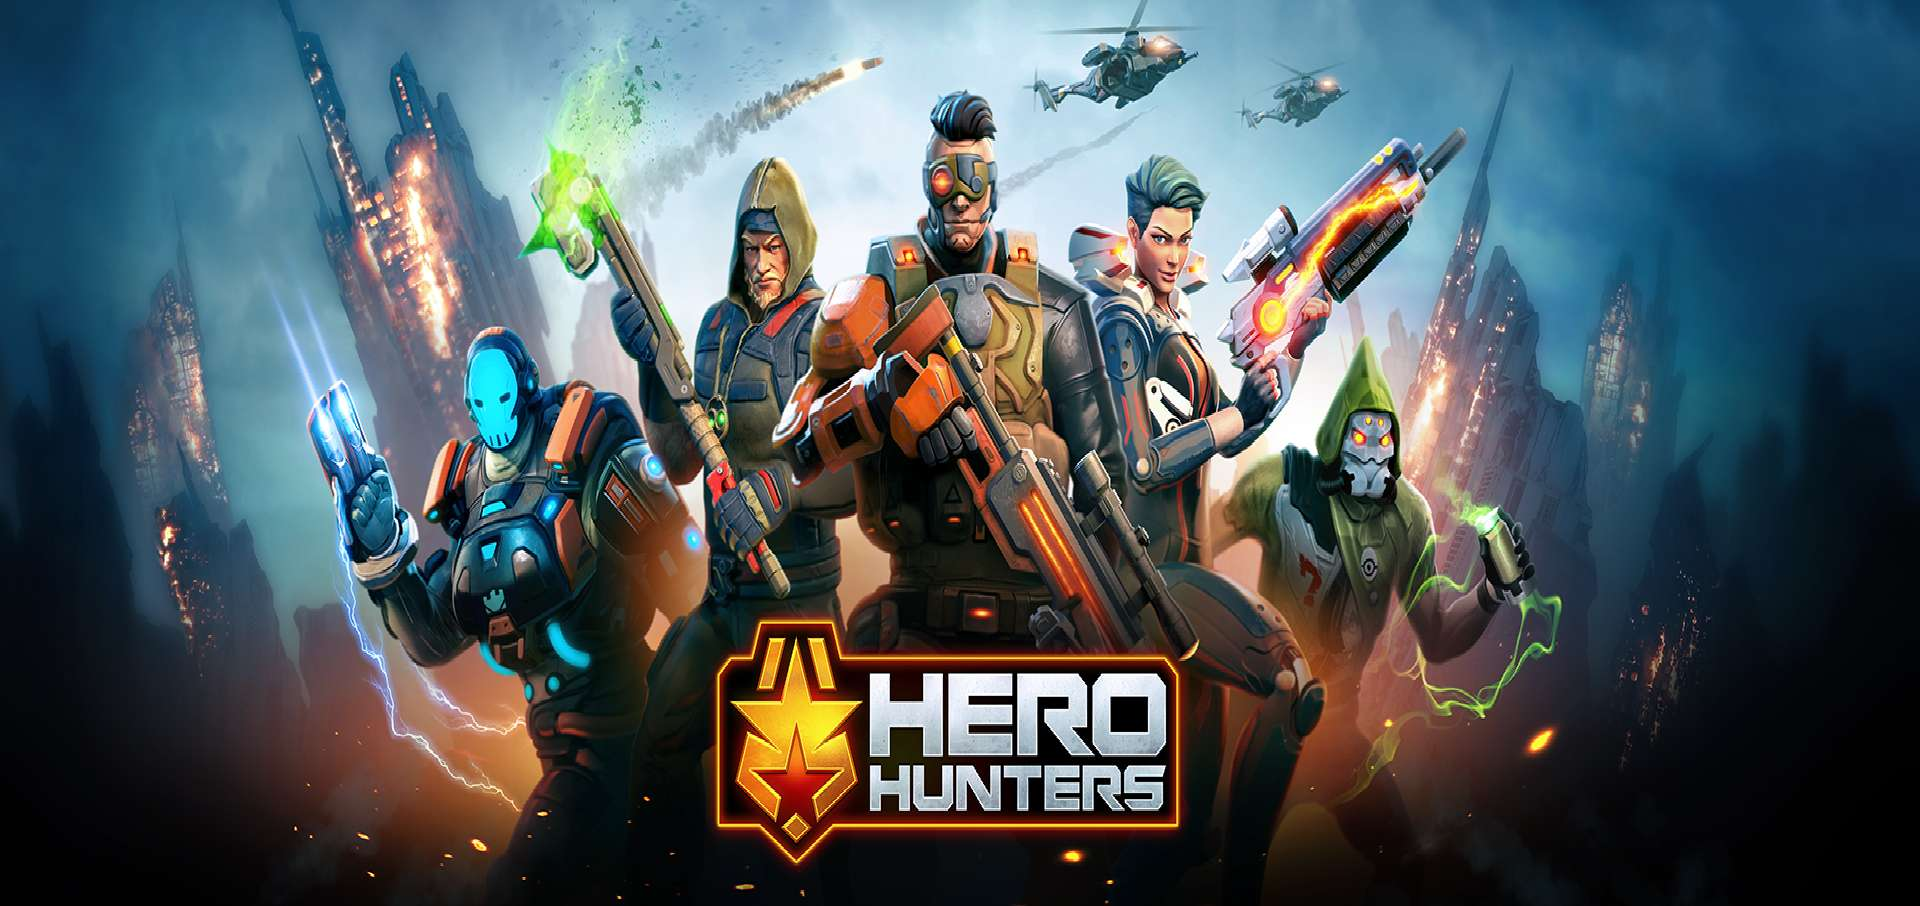 Hero Hunters Updates To Version 2.10 For The New Year And New Heros Comes With It